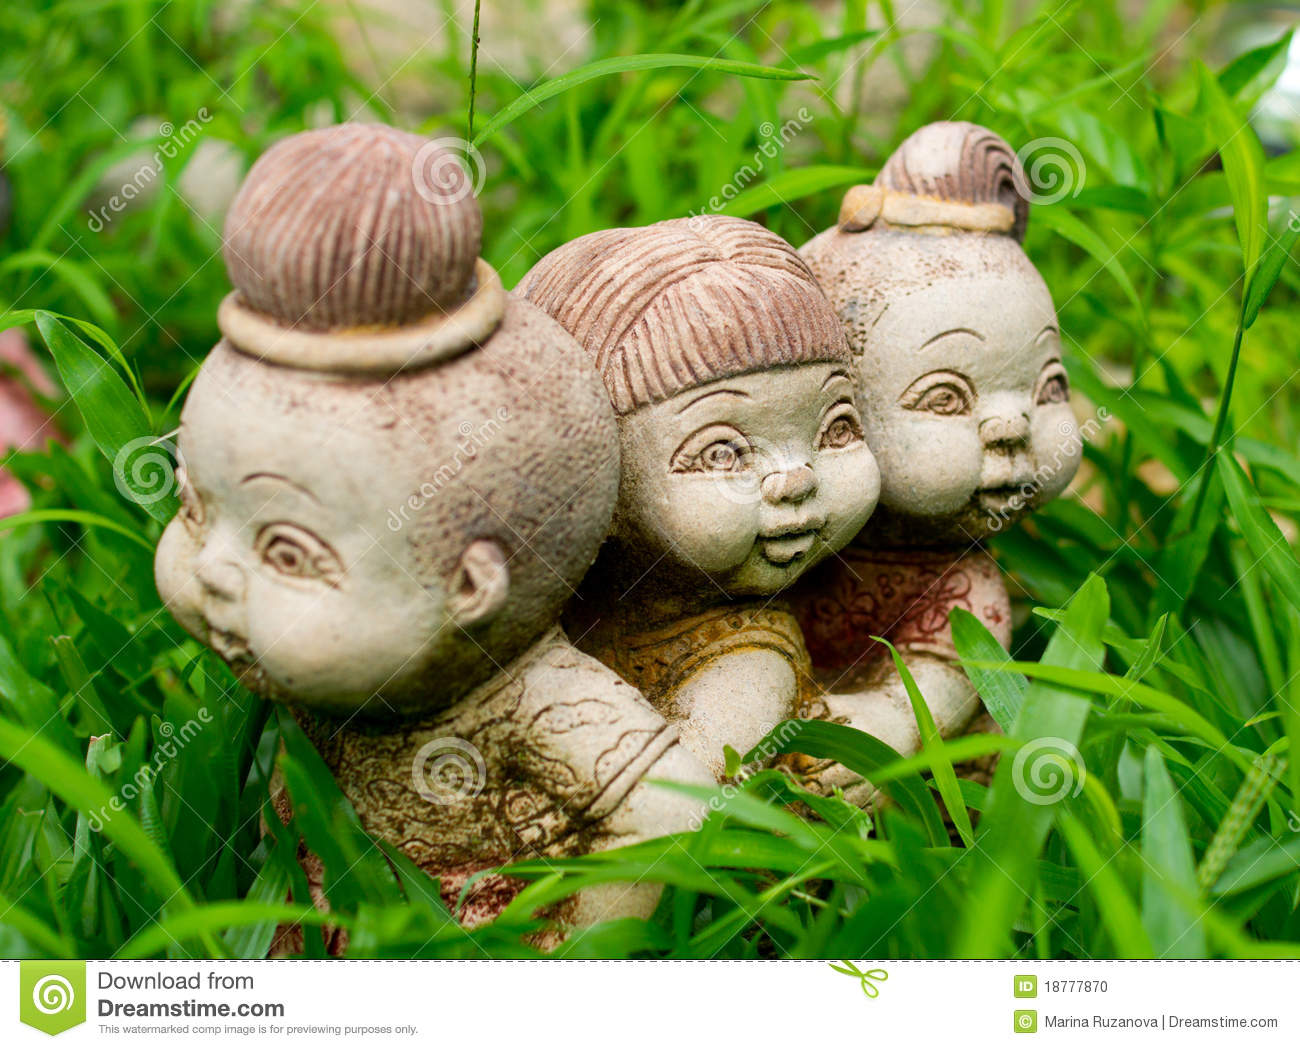 Garden Figurines Stock Photo Image 18777870